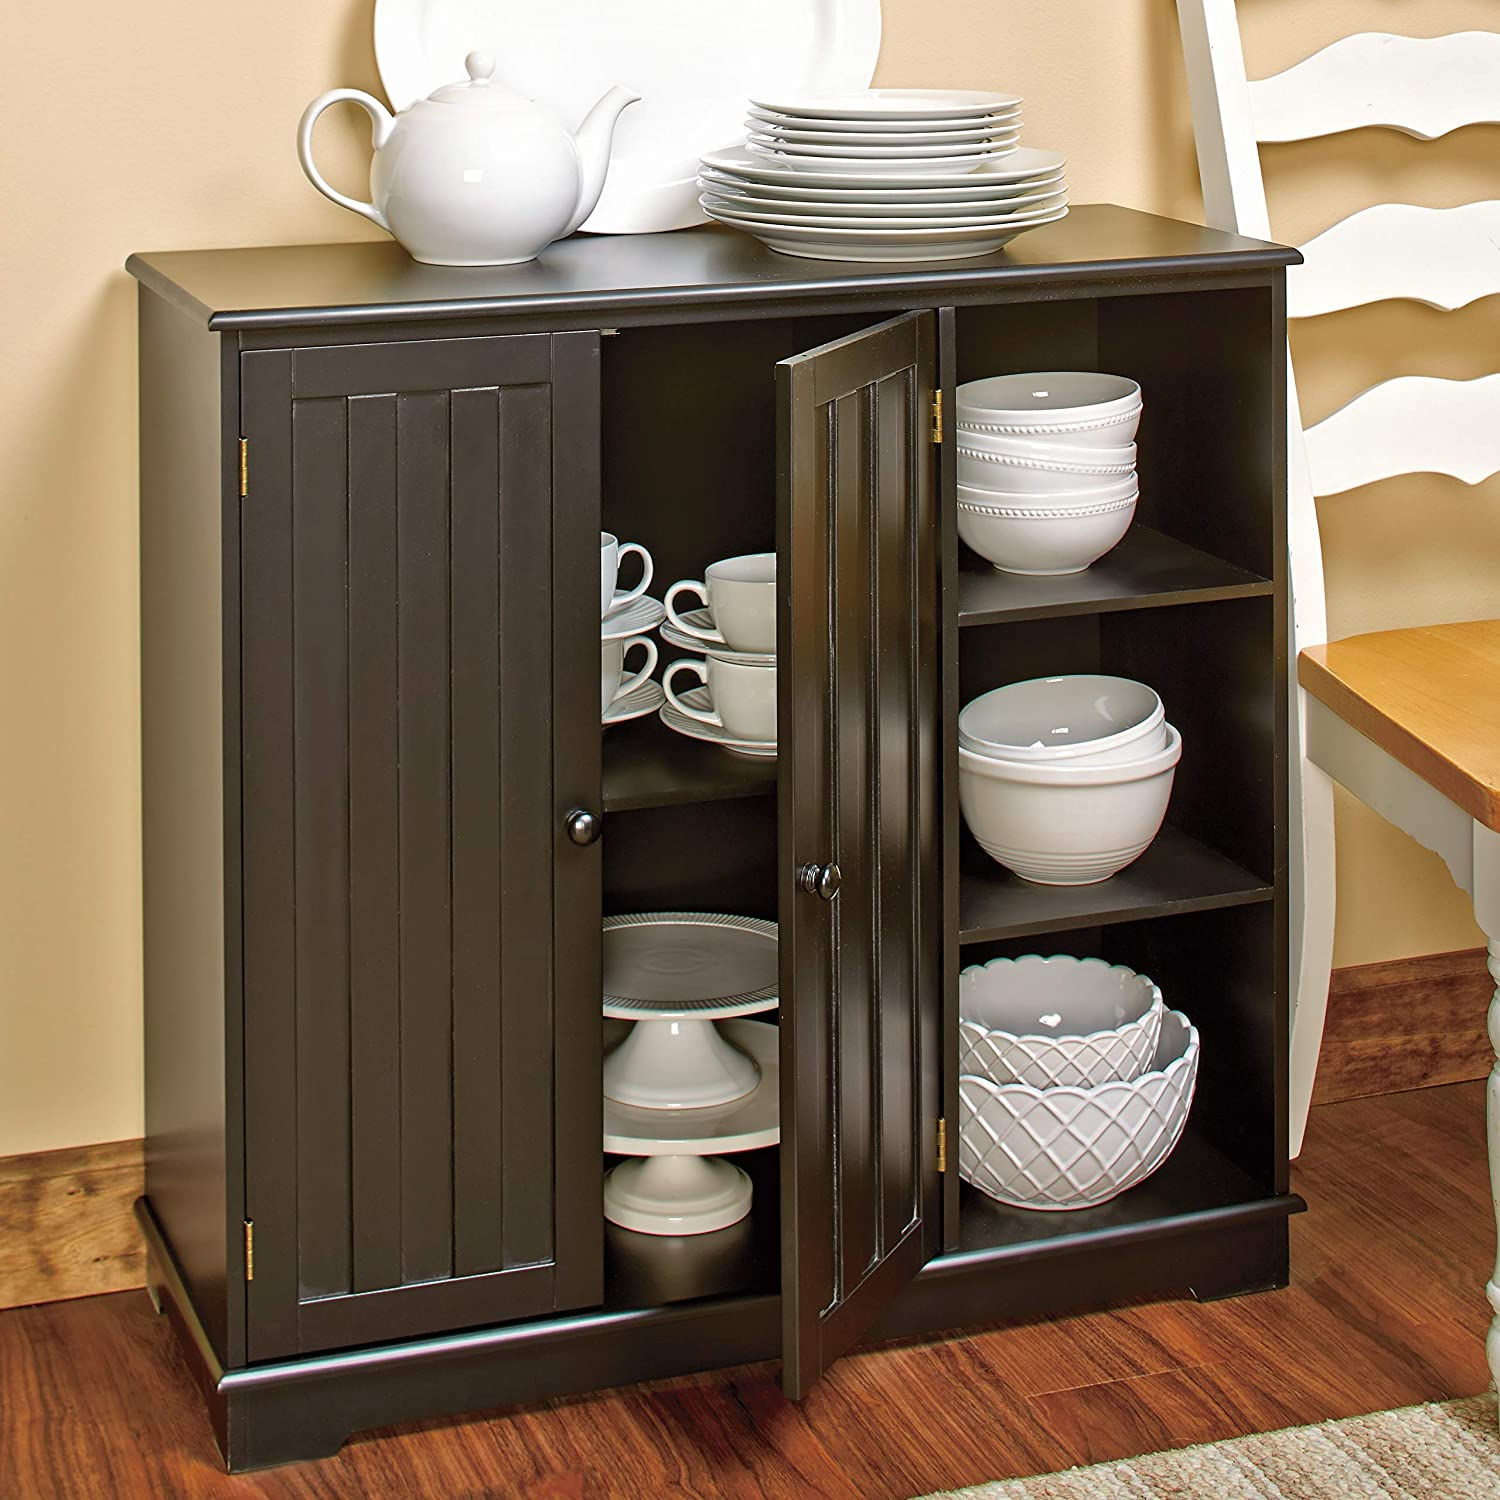 The Lakeside Collection Beadboard Buffet Cabinet - Sideboard wit Save money excellence